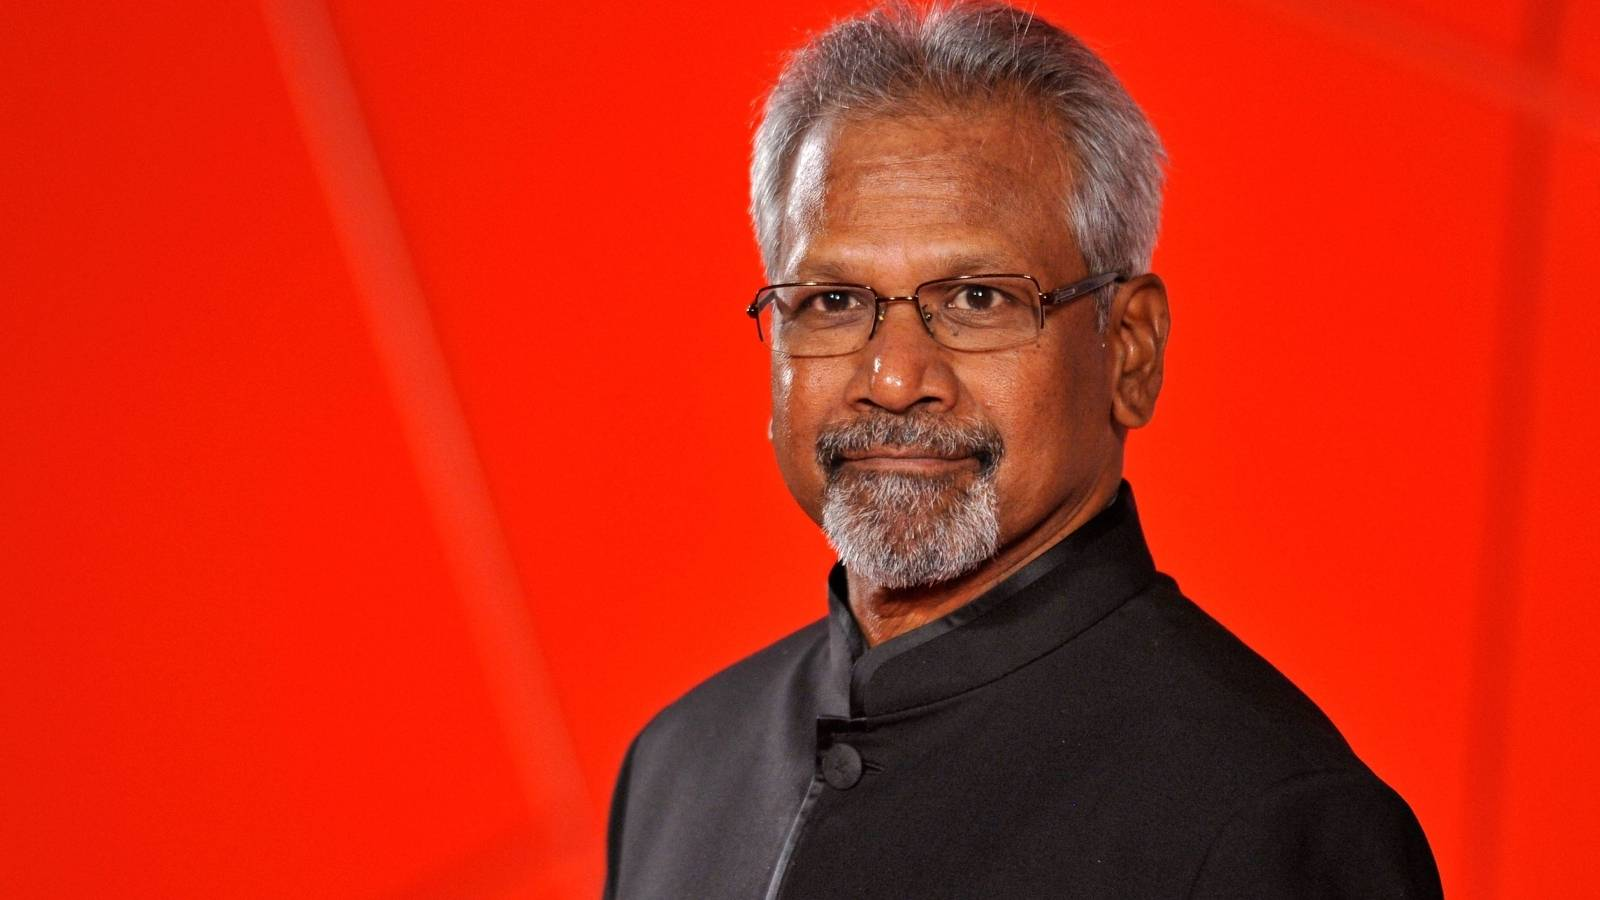 LOOK WHO IS GOING TO JOIN MANI RATNAM'S NEXT FILM